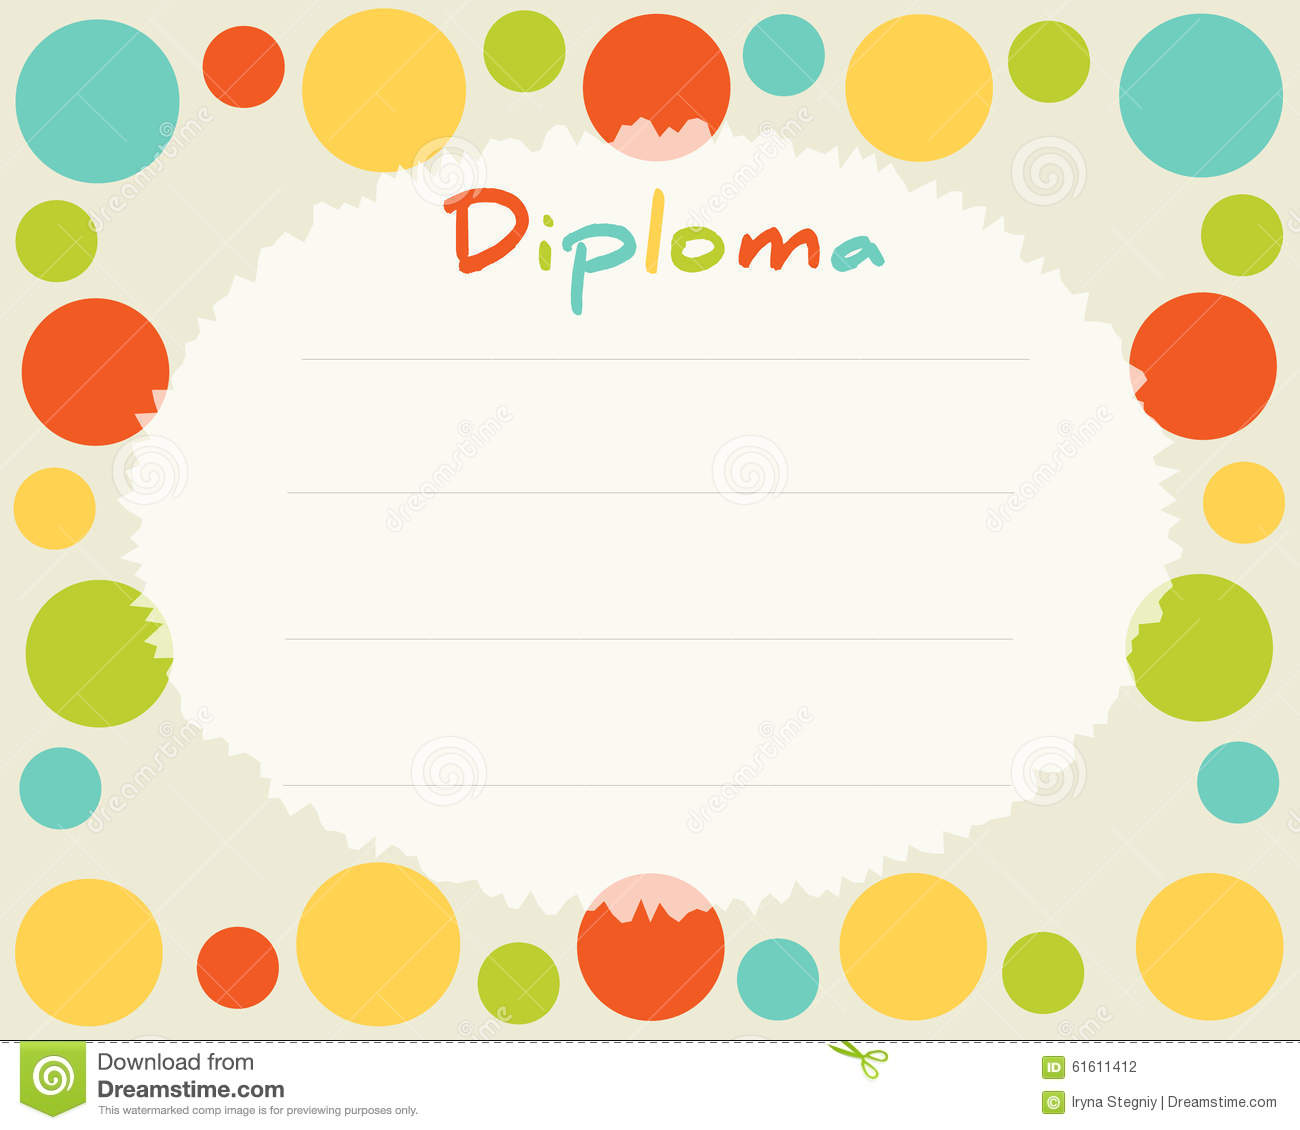 preschool elementary school kids diploma certificate background  preschool elementary school kids diploma certificate background